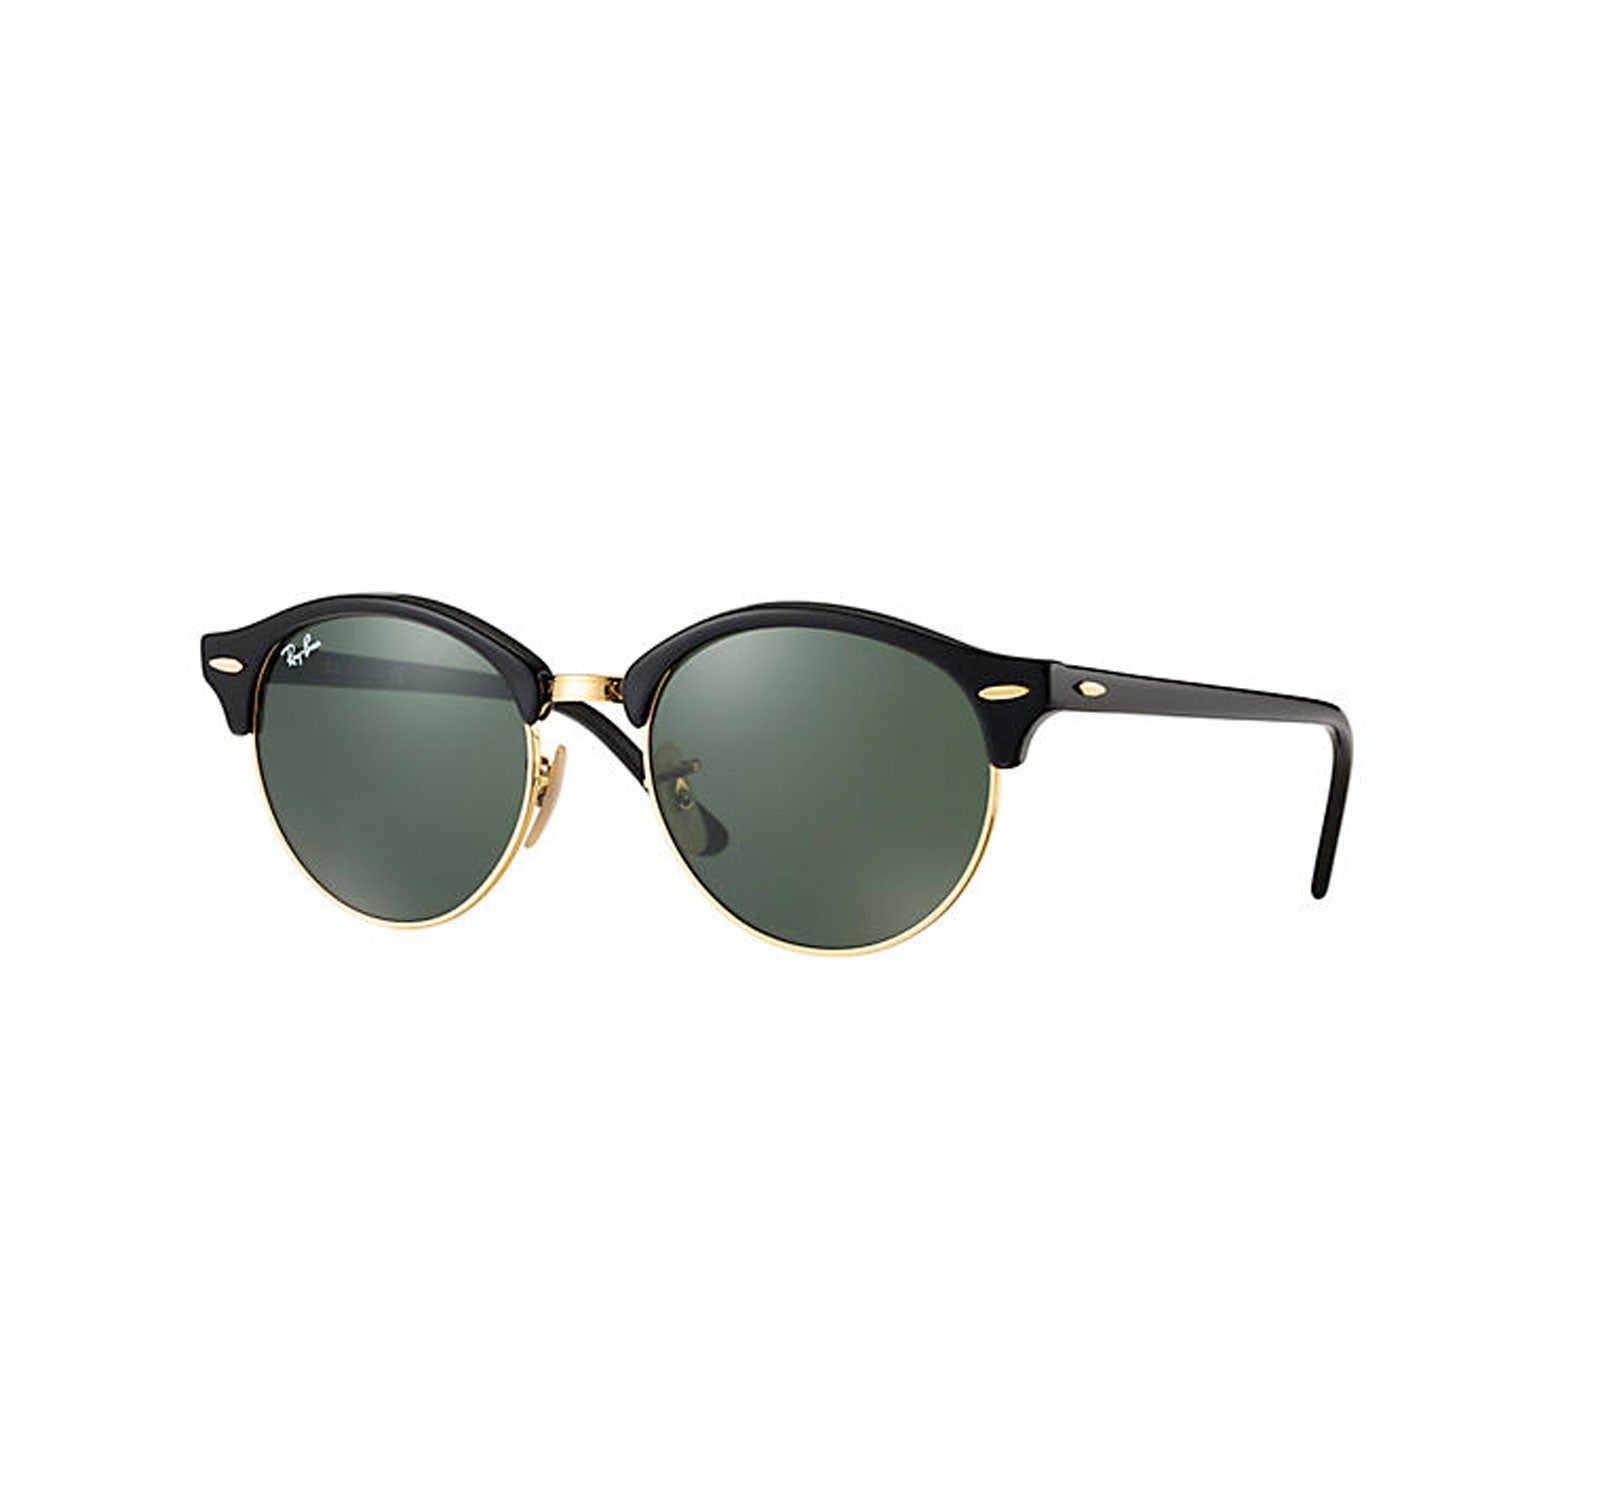 Ray-Ban Clubround Men's Sunglasses - Black/Green